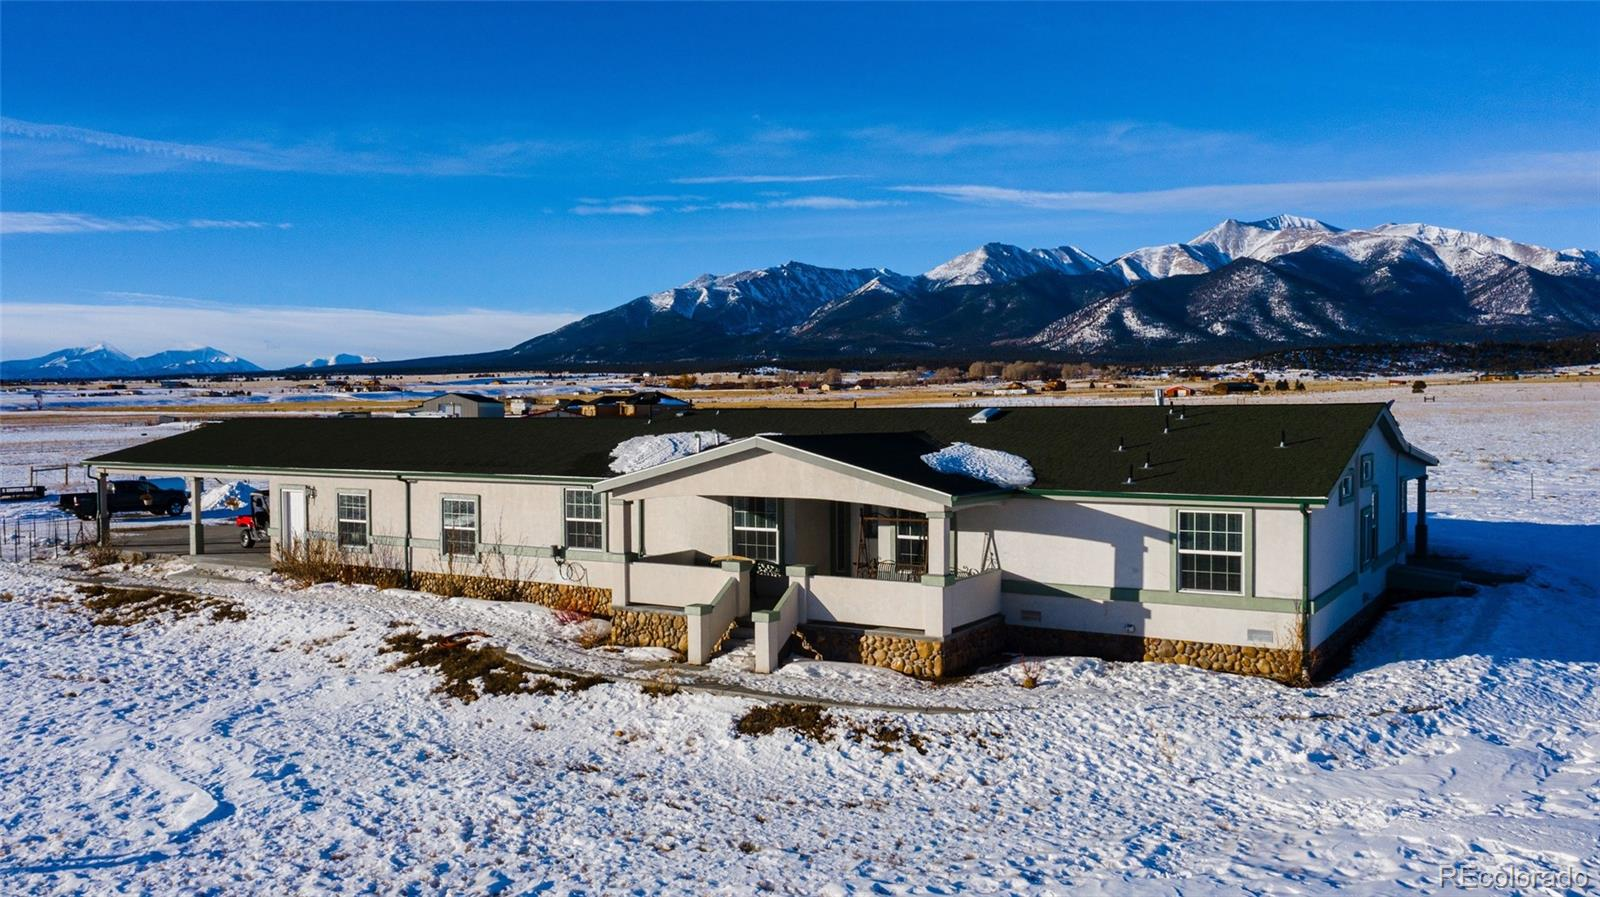 20650 County Road 281, Nathrop, CO 81236 - Nathrop, CO real estate listing